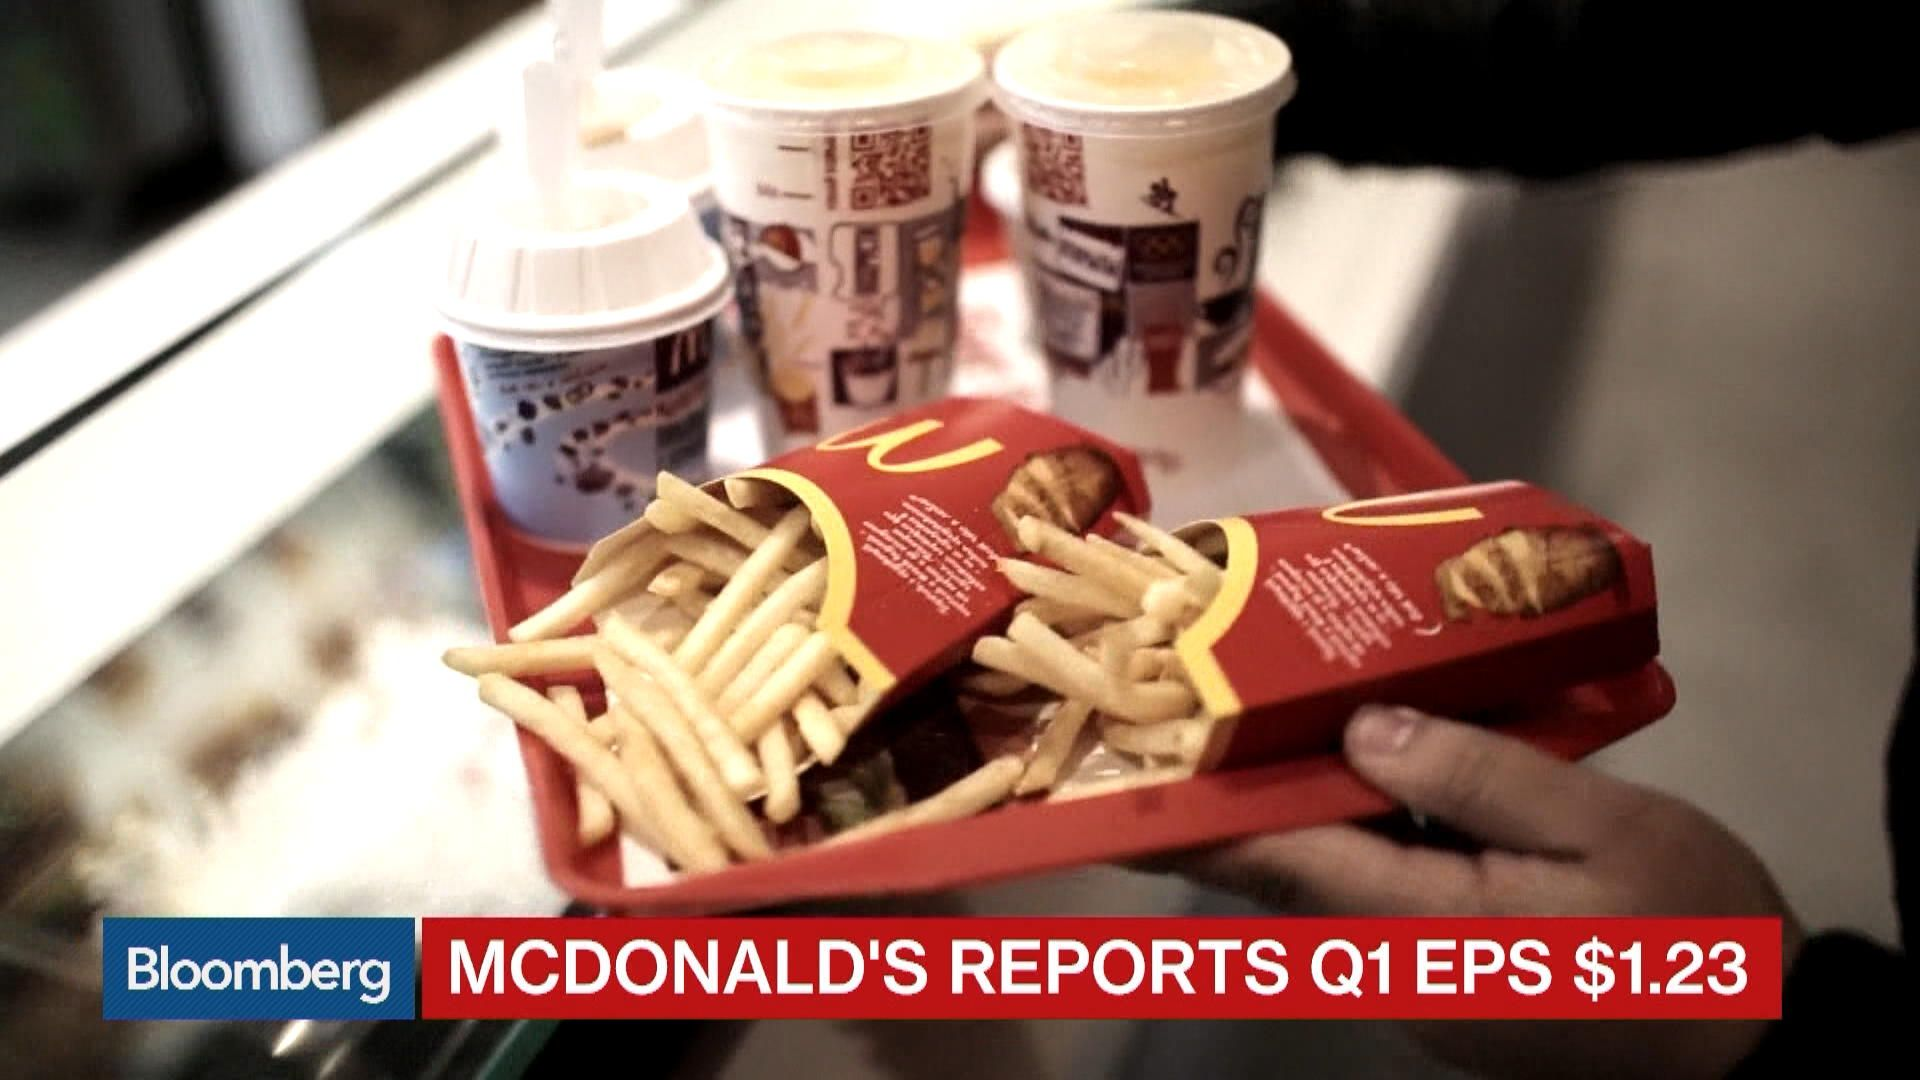 McDonald's All-Day Breakfast, Value Deals Help Fuel Turnaround - Bloomberg